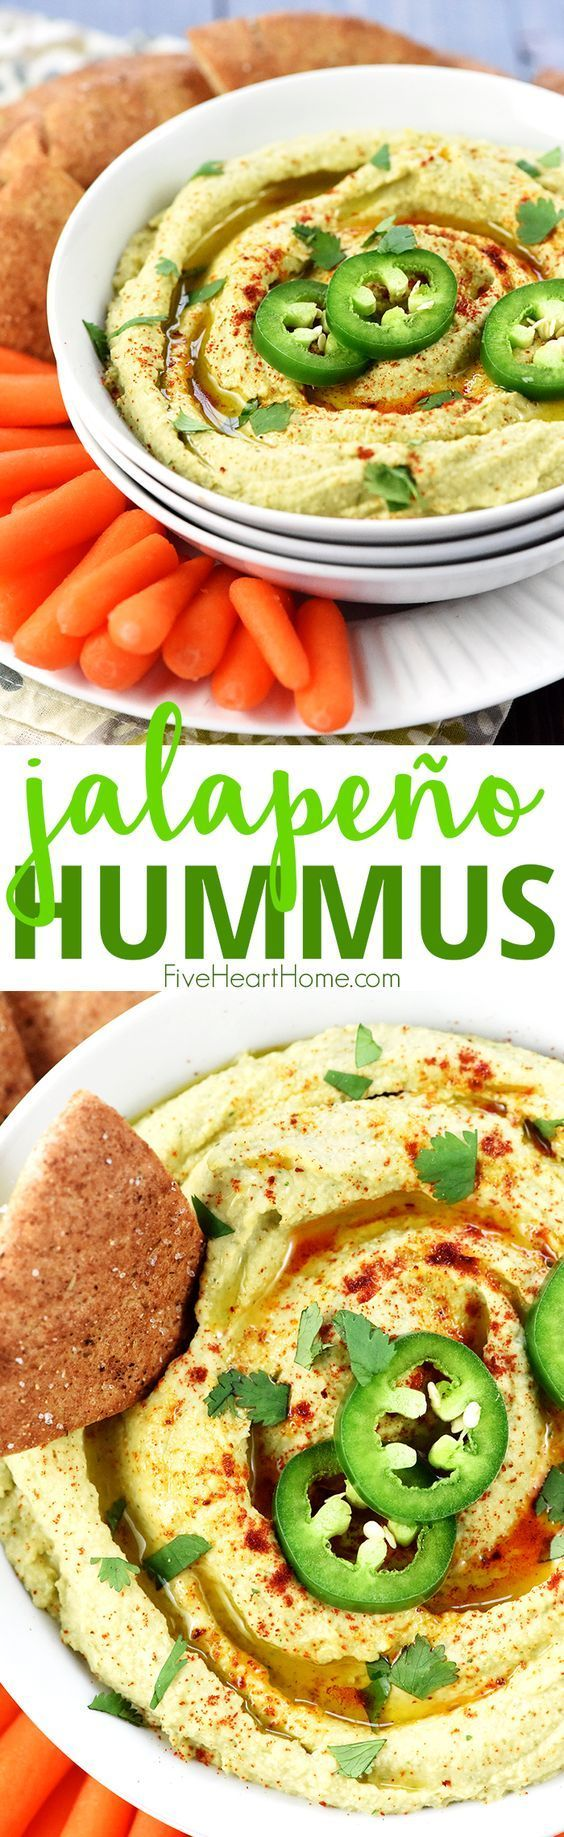 Jalapeño Hummus ~ classic hummus gets a zippy kick in this healthy, flavorful, quick and easy dip for pita wedges or your favorite raw veggies!   FiveHeartHome.com #jalapeno #hummus #healthy #healthyrecipes #appetizer #dips #recipe #fivehearthome